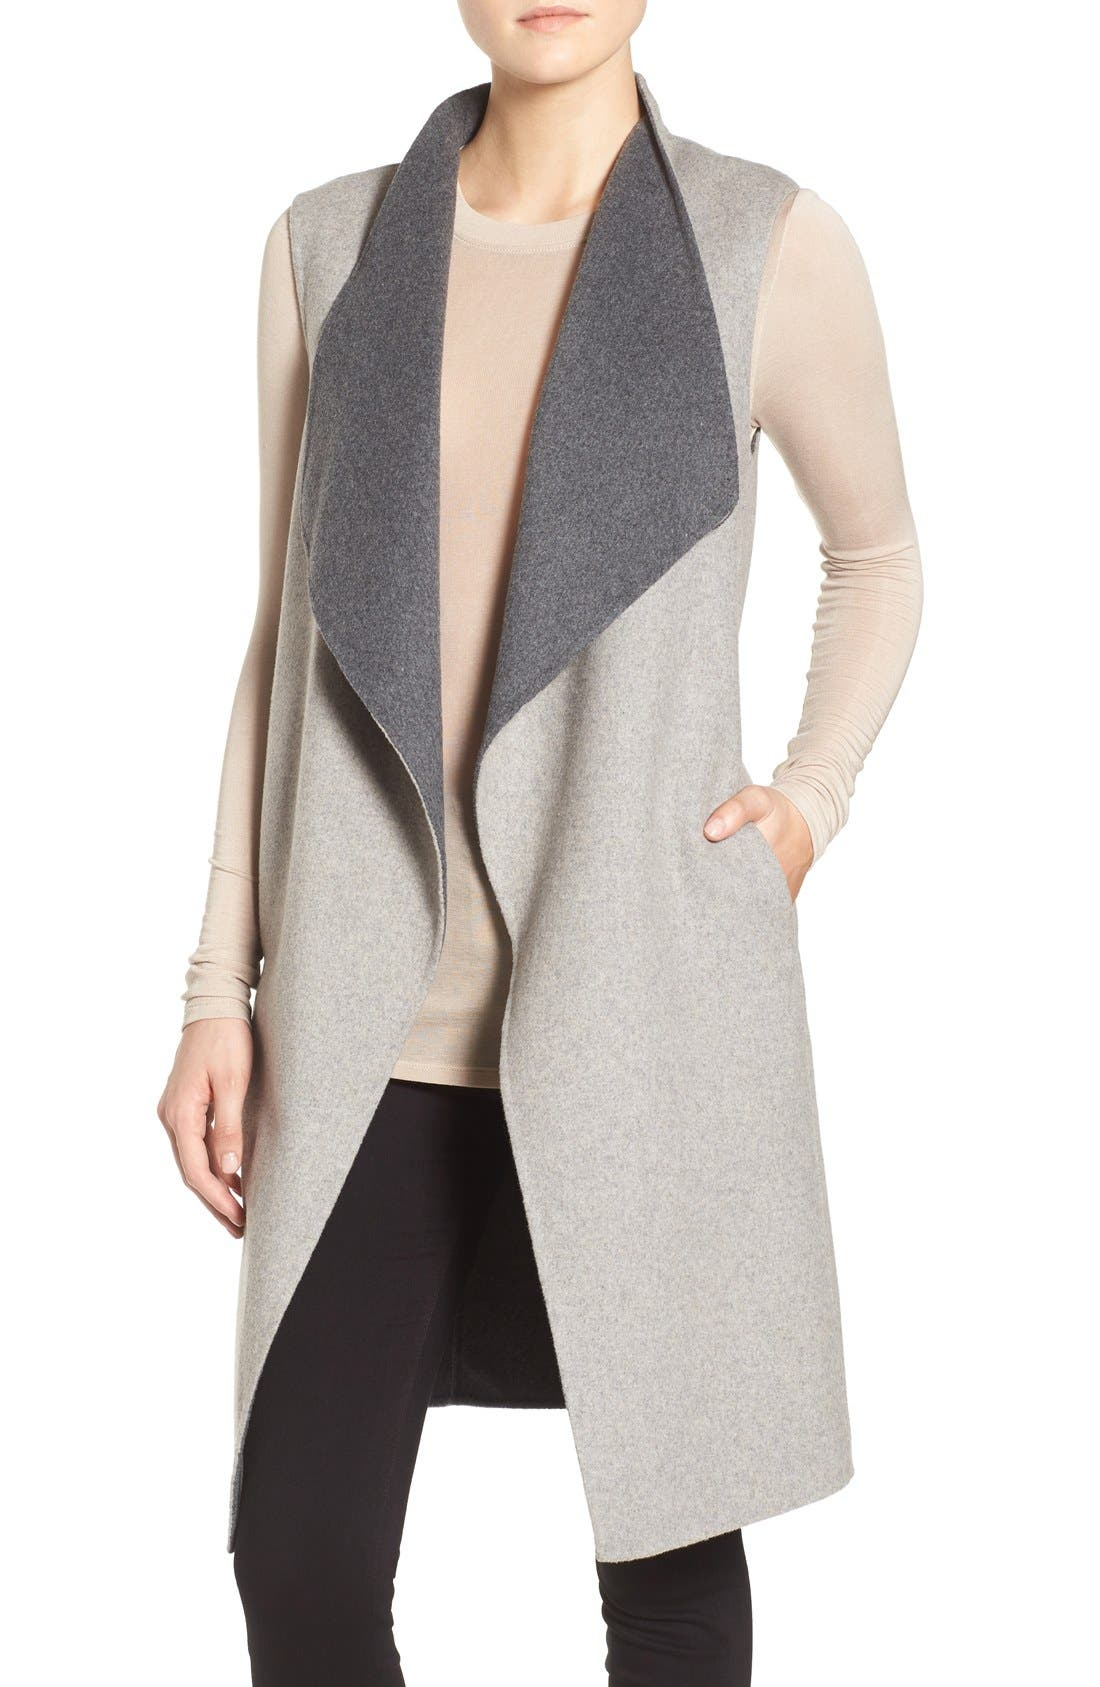 Alternate Image 1 Selected - Soia & Kyo Double-Face Wool Blend Vest